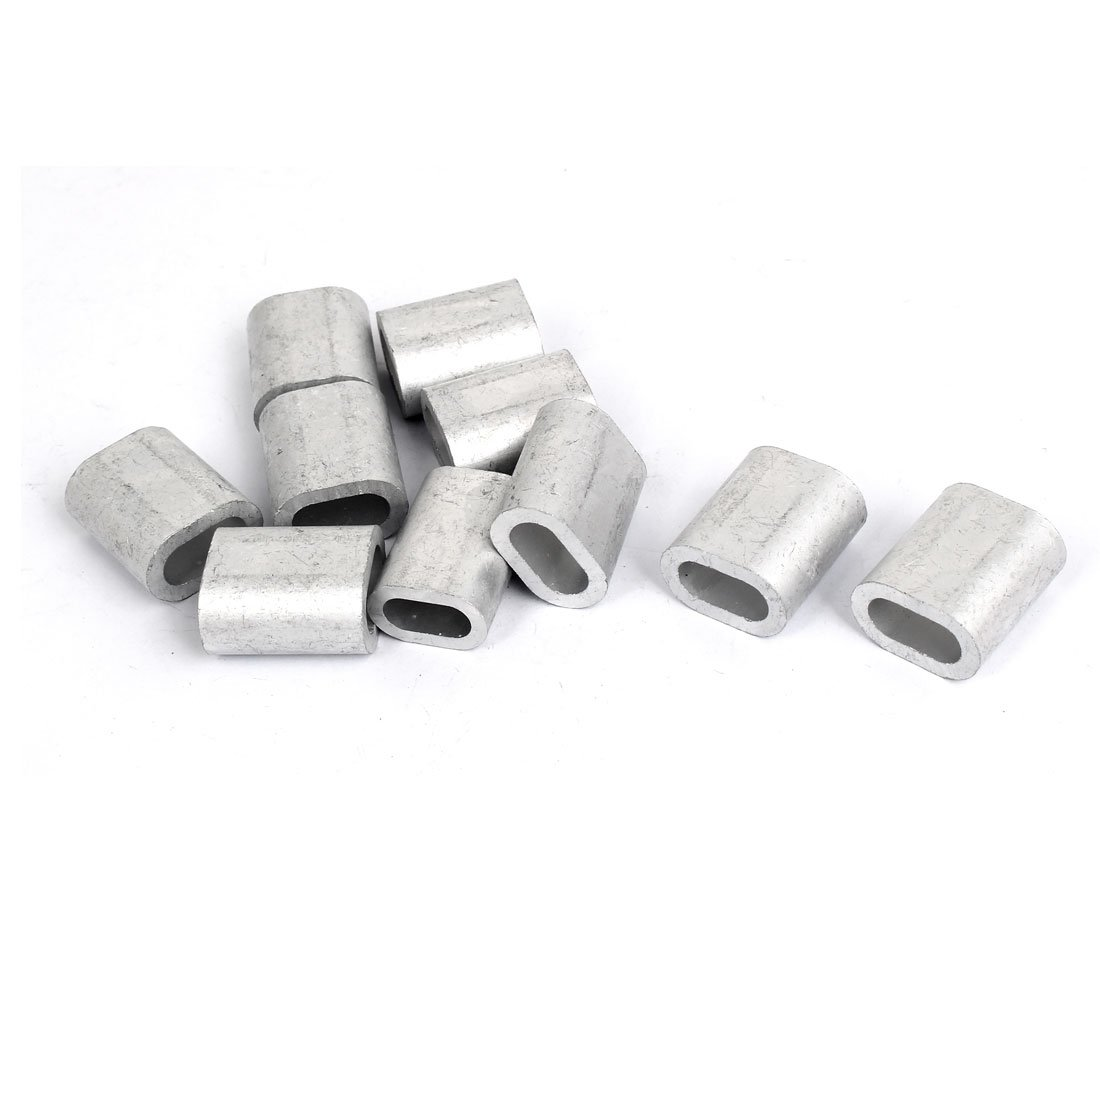 uxcell 8mm 5/16'' Steel Wire Rope Aluminum Ferrules Sleeves Silver Tone 10pcs